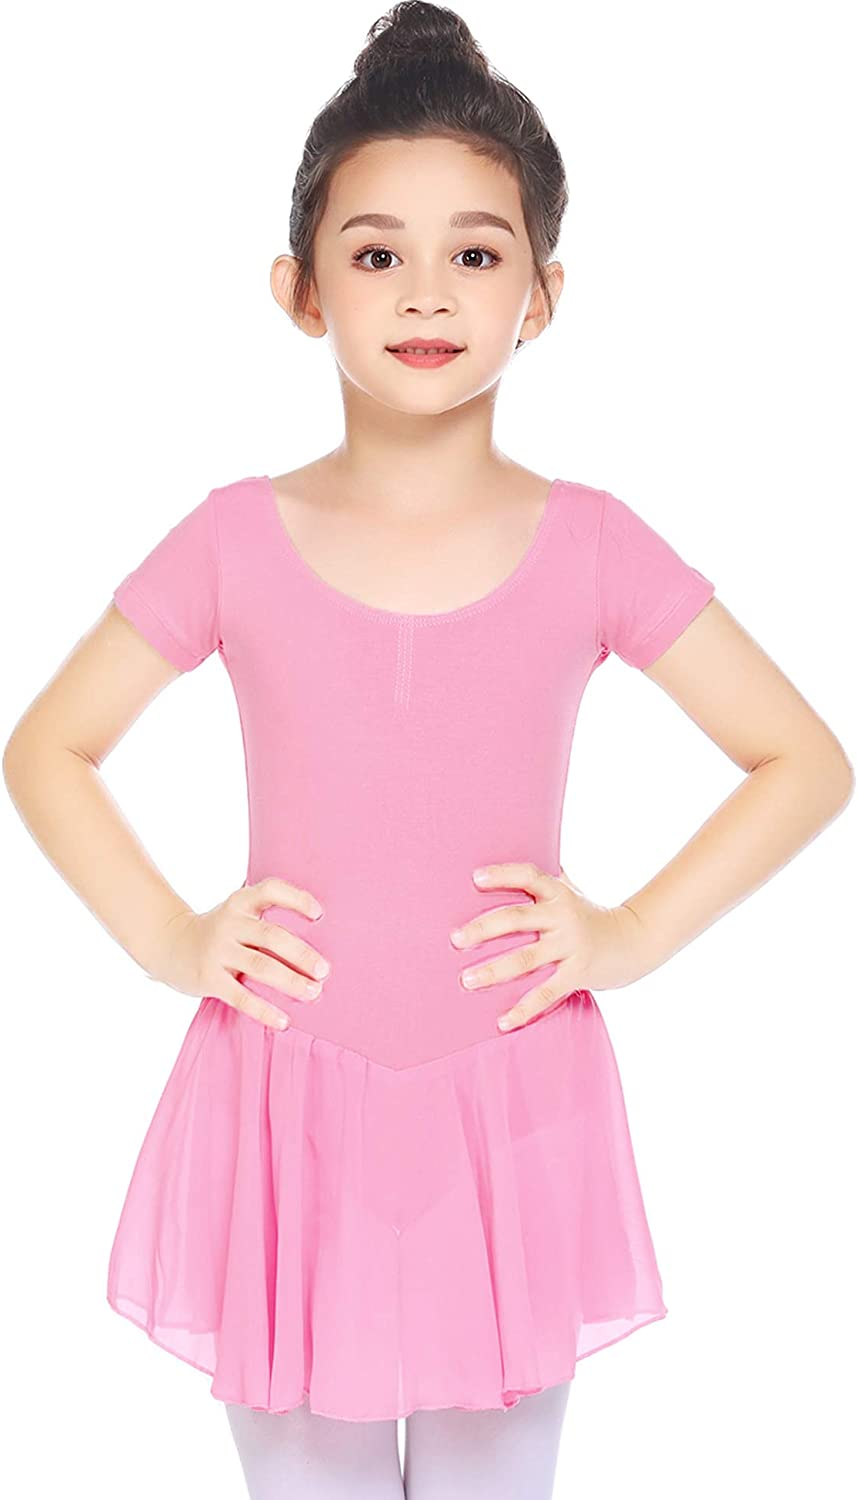 Boyoo Girl's Max 68% OFF Ballet Dance Dress Tutu Classic Short Sleeve SEAL limited product